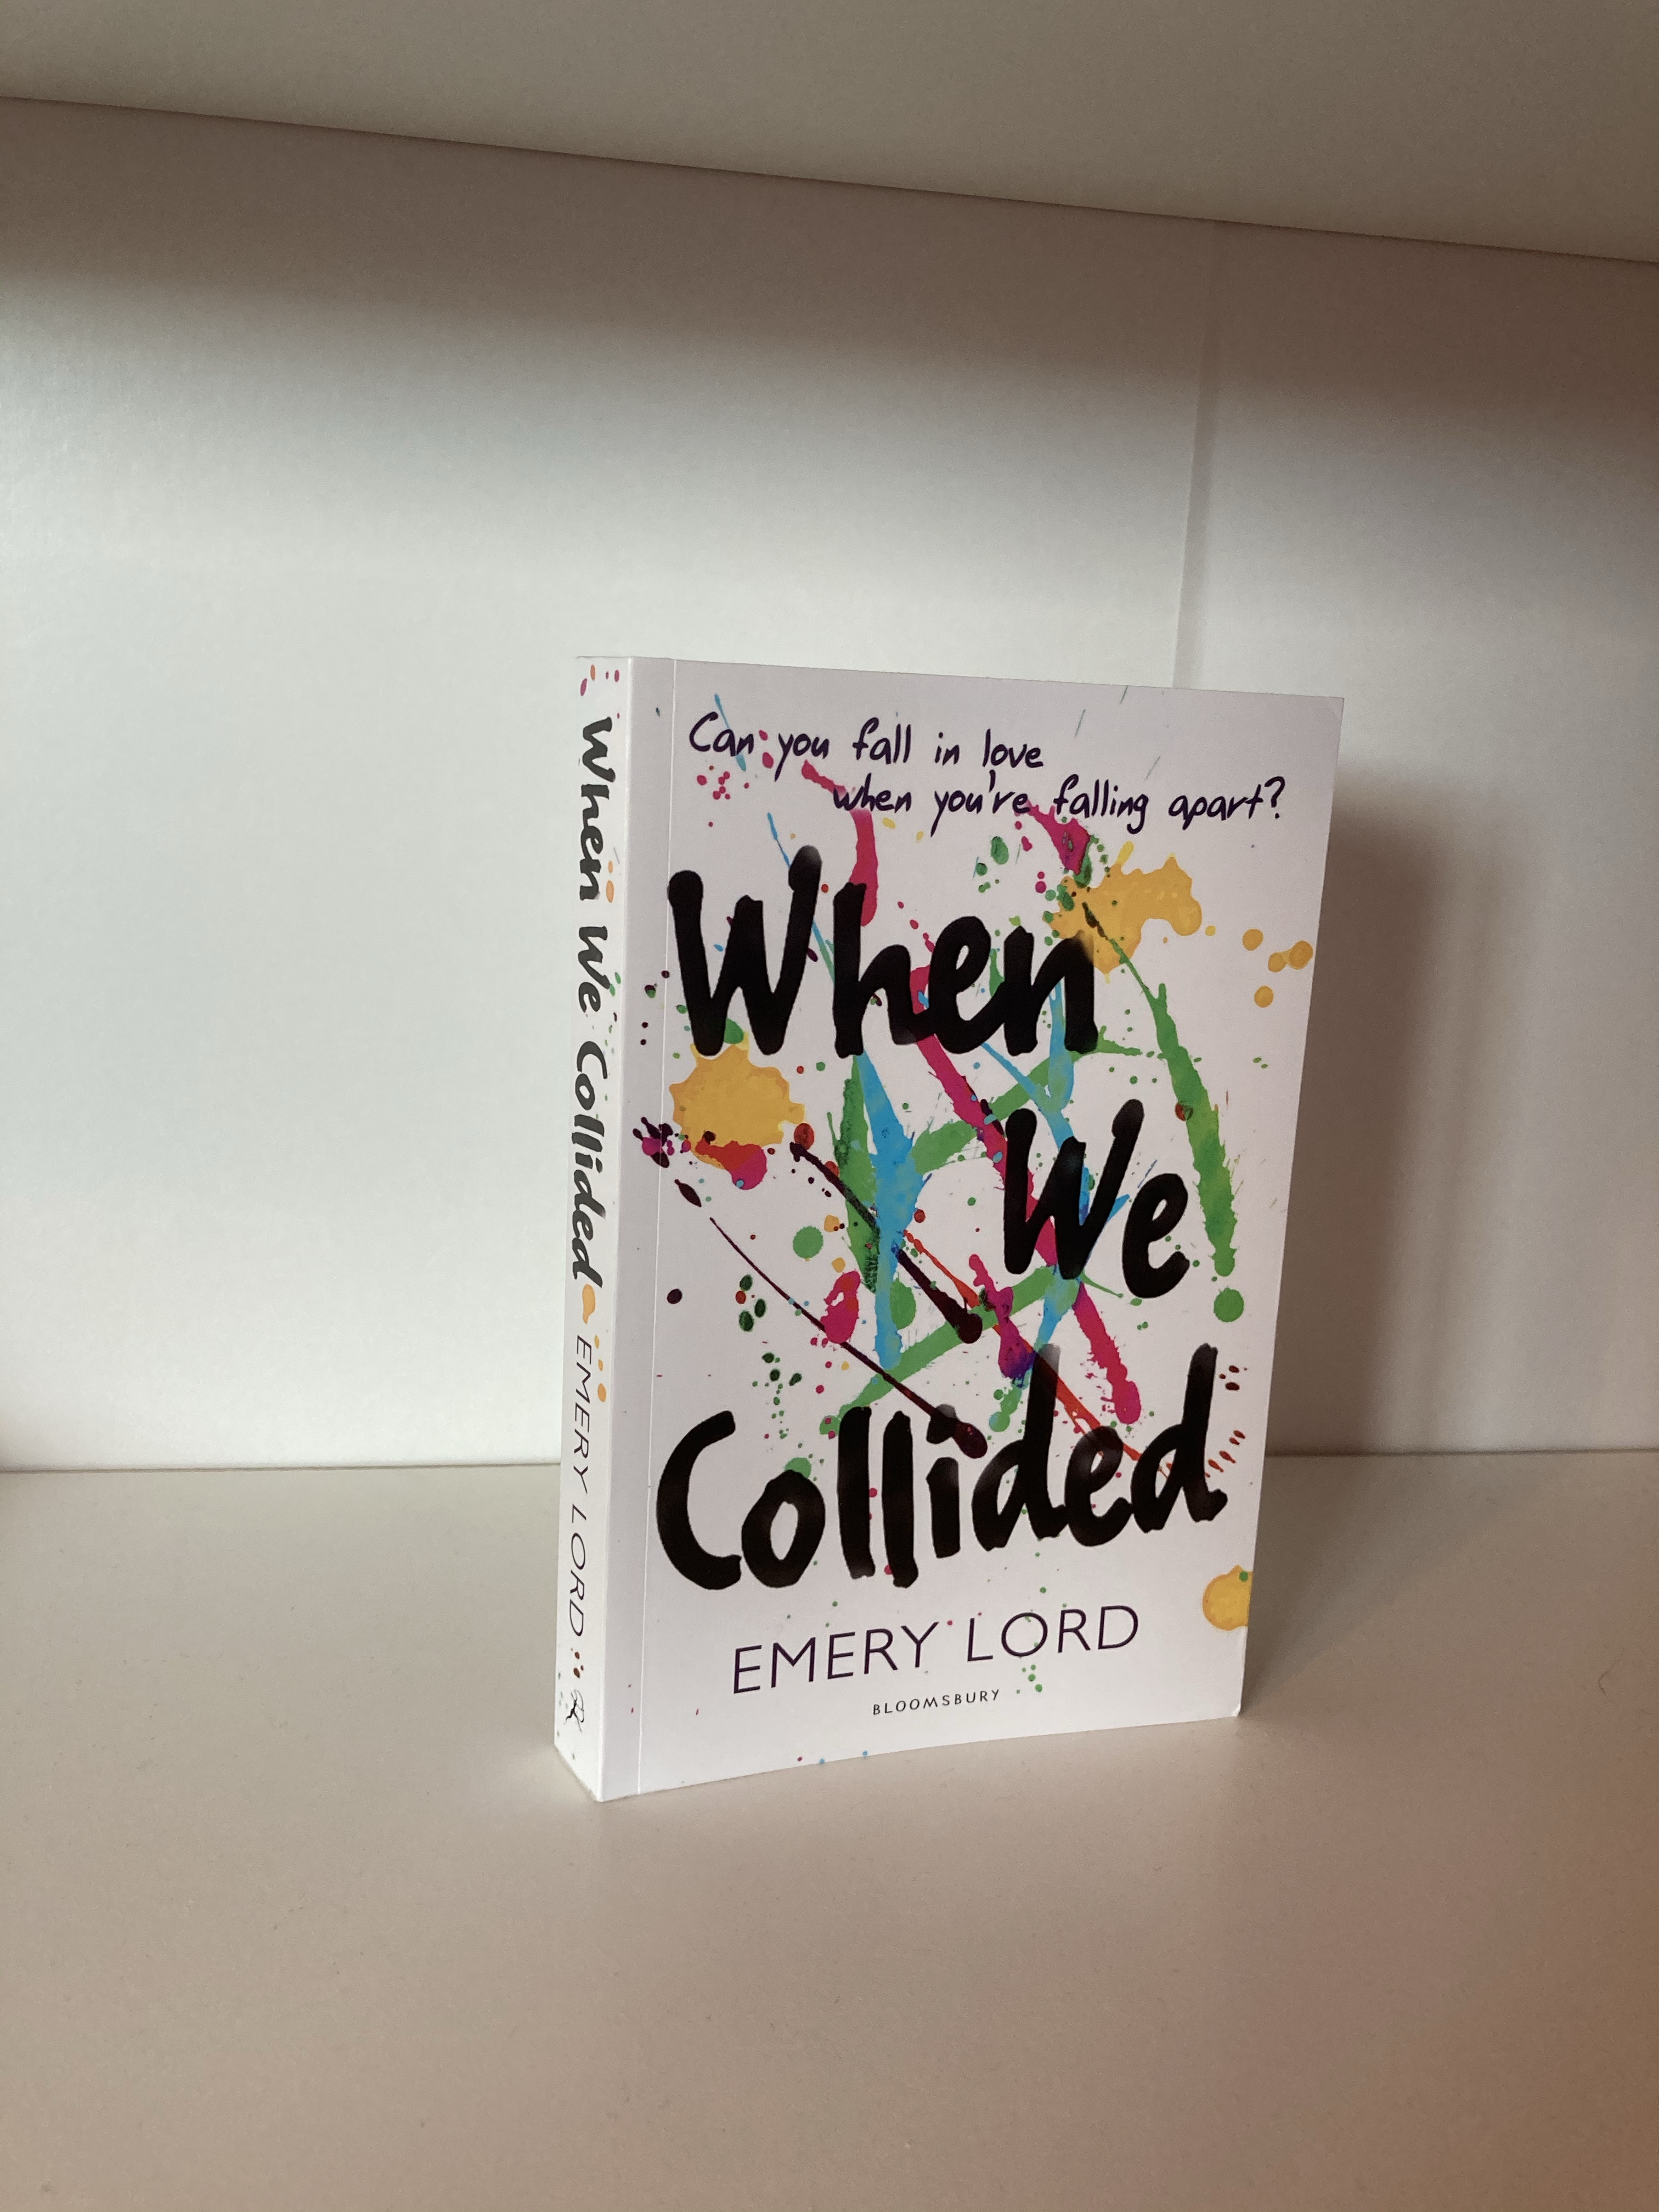 The cover of When We Collided by Emery Lord